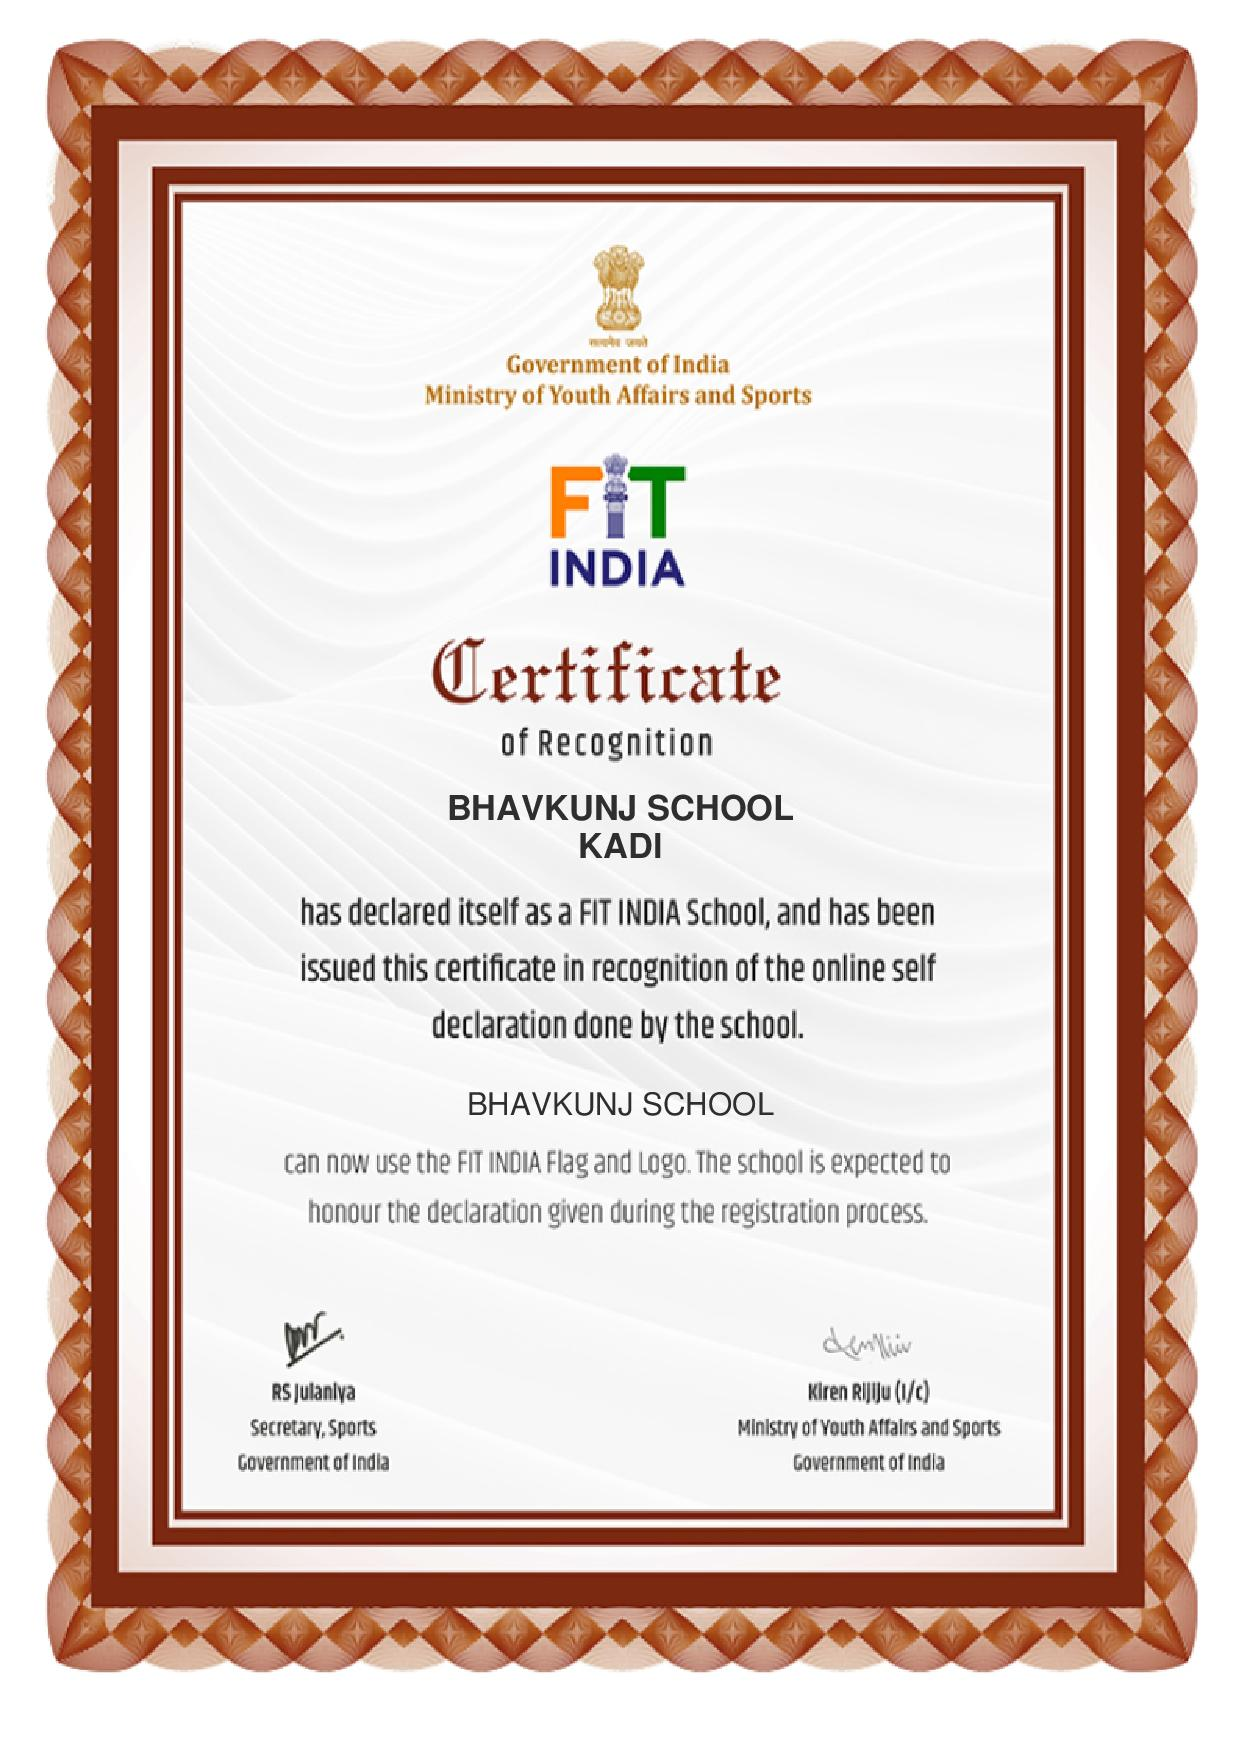 Bhavkunj School has been awarded Fit India Certificate from the Government of India Ministry of Youth Affair and Sports